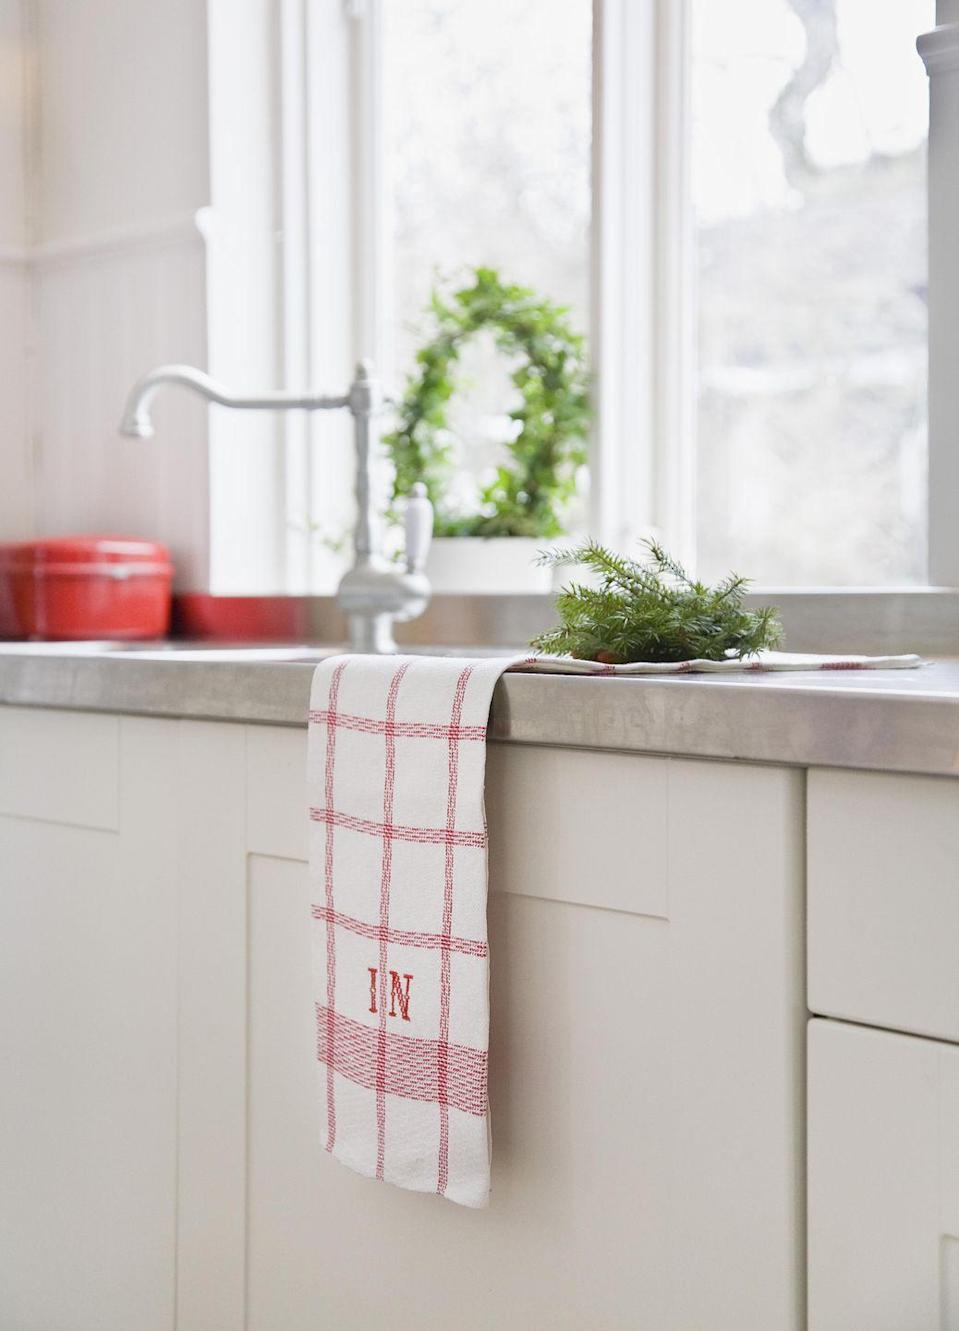 """<p>They might not <em>look </em>dirty, but dish towels were deemed the most contaminated spot in the kitchen in a <a href=""""http://www.goodhousekeeping.com/home/cleaning/news/a32256/germs-on-dish-towels/"""" rel=""""nofollow noopener"""" target=""""_blank"""" data-ylk=""""slk:USDA-funded study"""" class=""""link rapid-noclick-resp"""">USDA-funded study</a>. And the same goes for the <a href=""""http://www.goodhousekeeping.com/home/cleaning/tips/a26175/how-often-wash-towels/"""" rel=""""nofollow noopener"""" target=""""_blank"""" data-ylk=""""slk:small towels in your bathroom"""" class=""""link rapid-noclick-resp"""">small towels in your bathroom</a>, according to Carolyn Forte, director of the Cleaning Lab at the <a class=""""link rapid-noclick-resp"""" href=""""http://www.goodhousekeeping.com/institute/about-the-institute/a16265/about-good-housekeeping-research-institute/"""" rel=""""nofollow noopener"""" target=""""_blank"""" data-ylk=""""slk:Good Housekeeping Institute"""">Good Housekeeping Institute</a><span class=""""redactor-invisible-space"""">: """"Hand towels get dirtier faster since you use them more than once per day. They should be changed every couple days, or even every day, if you have a large family.""""</span></p>"""